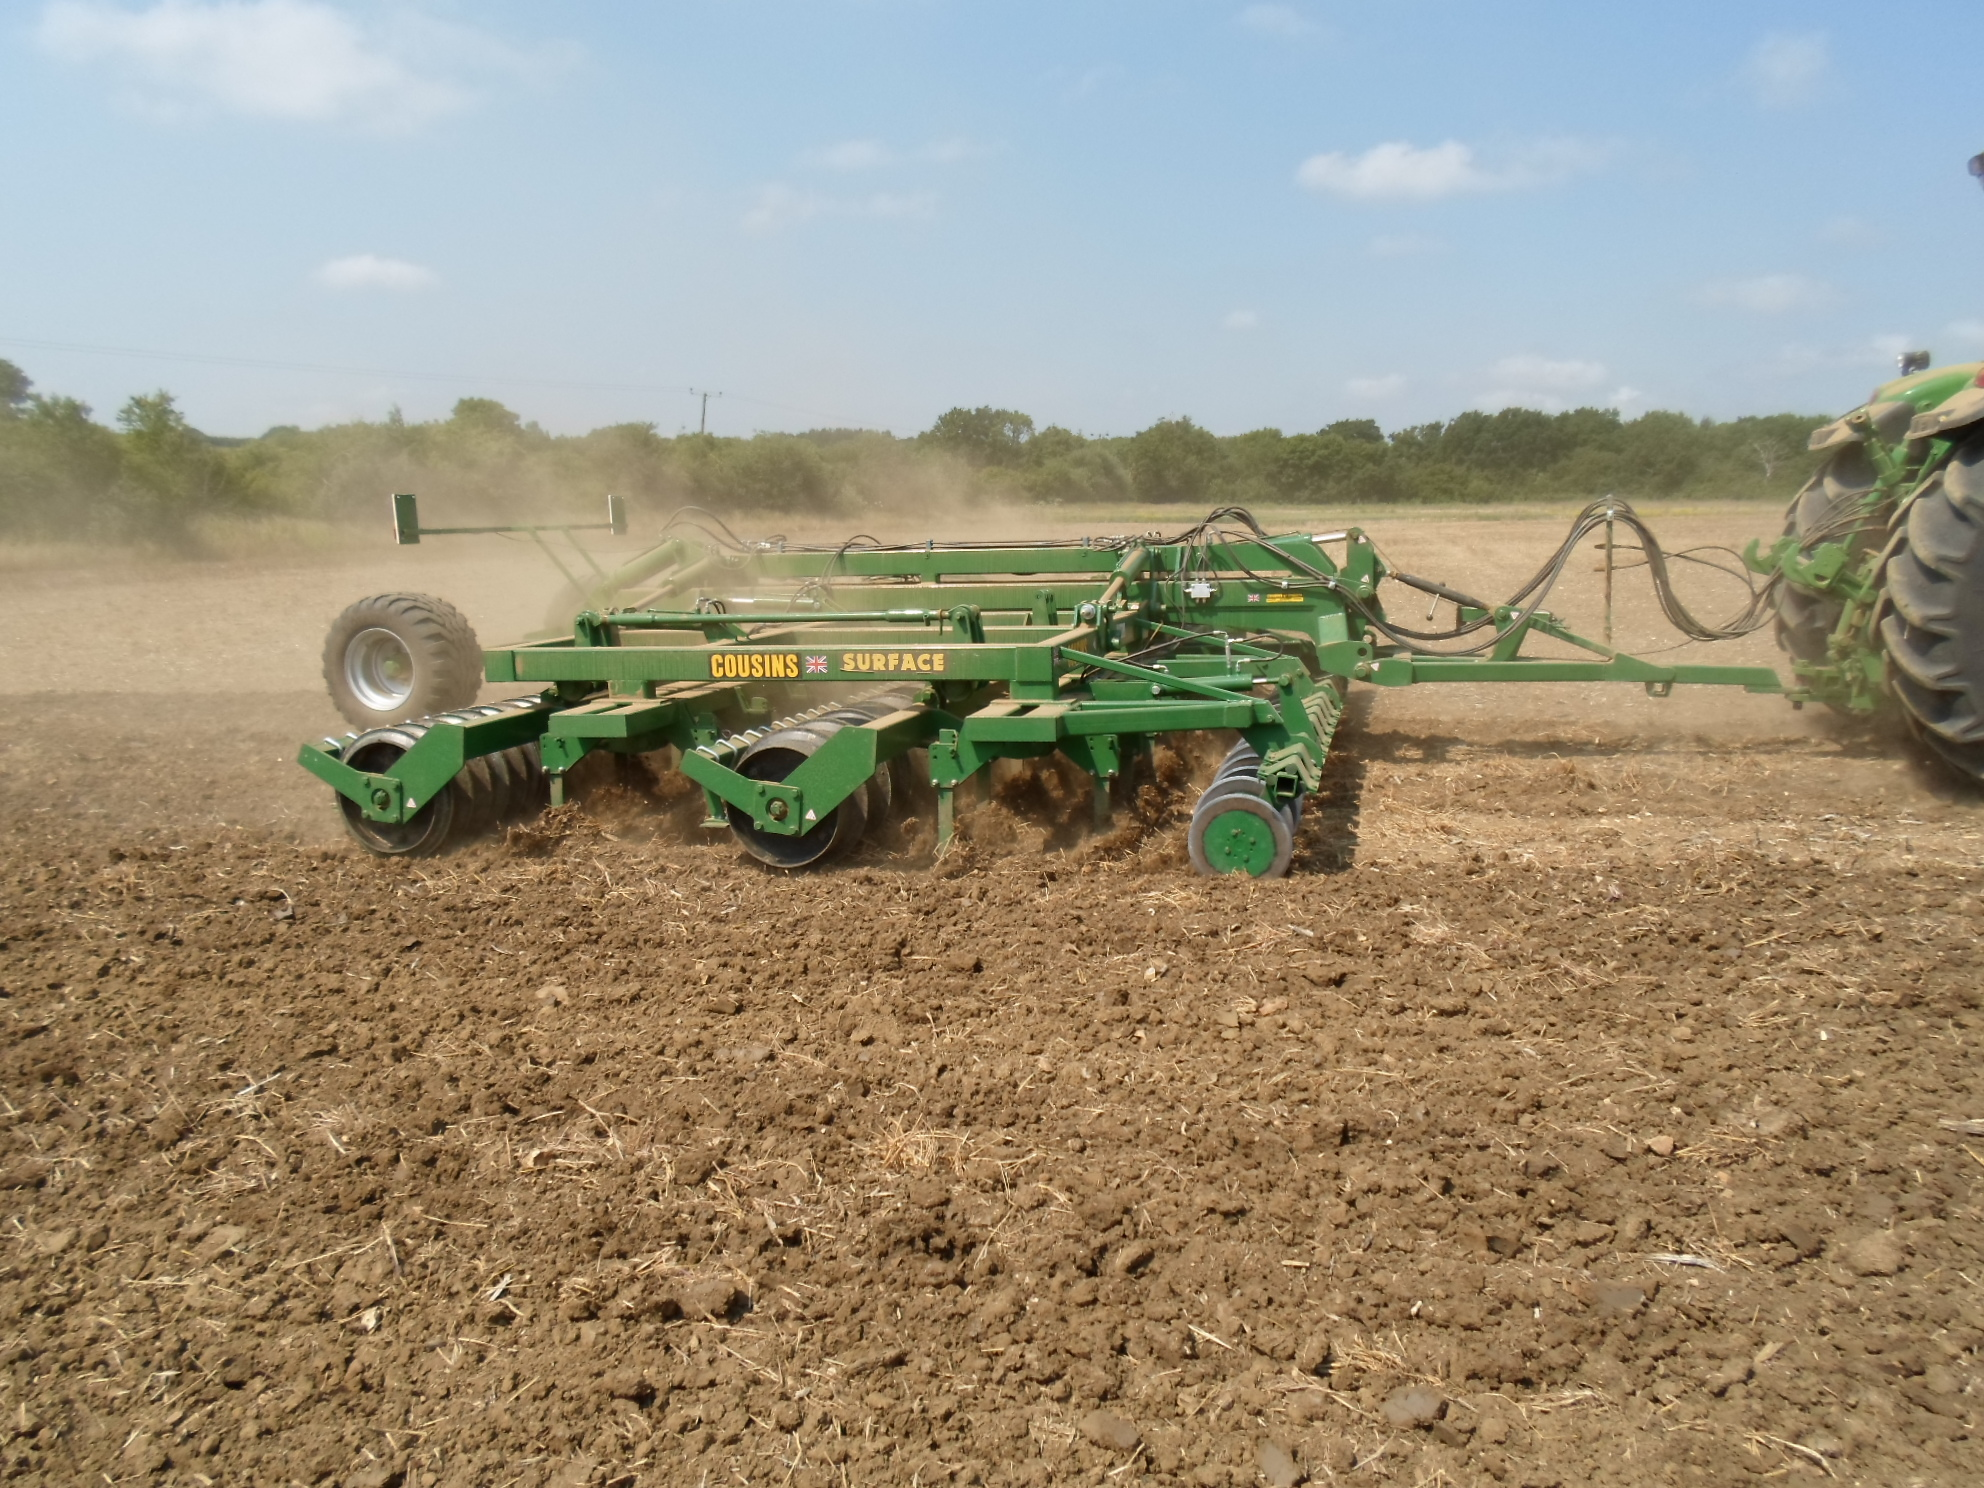 Cousins of Emneth's surface seed-bed cultivator